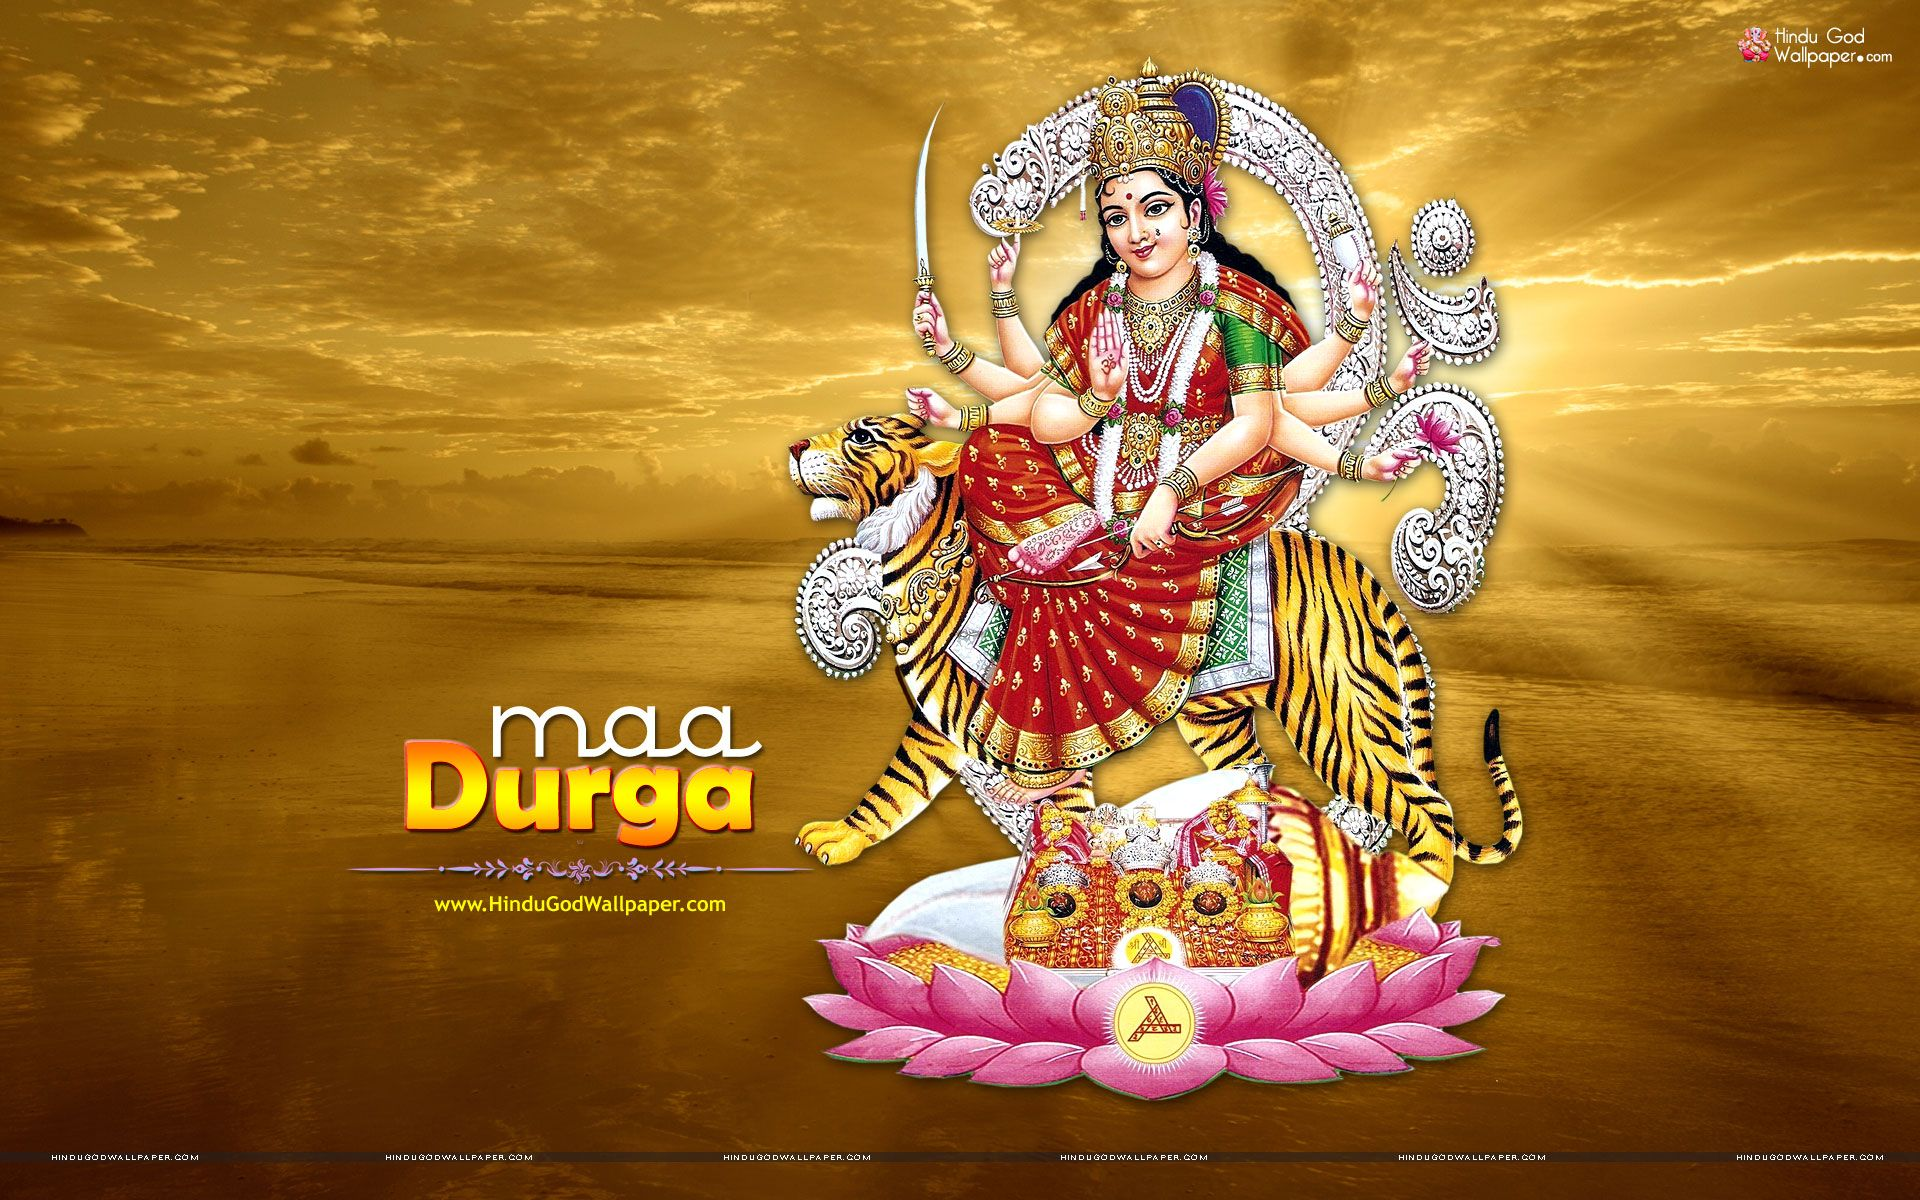 Maa Durga Wallpaper Full Size For Desktop Download Maa Durga Hd Wallpaper Durga Maa Durga Ji